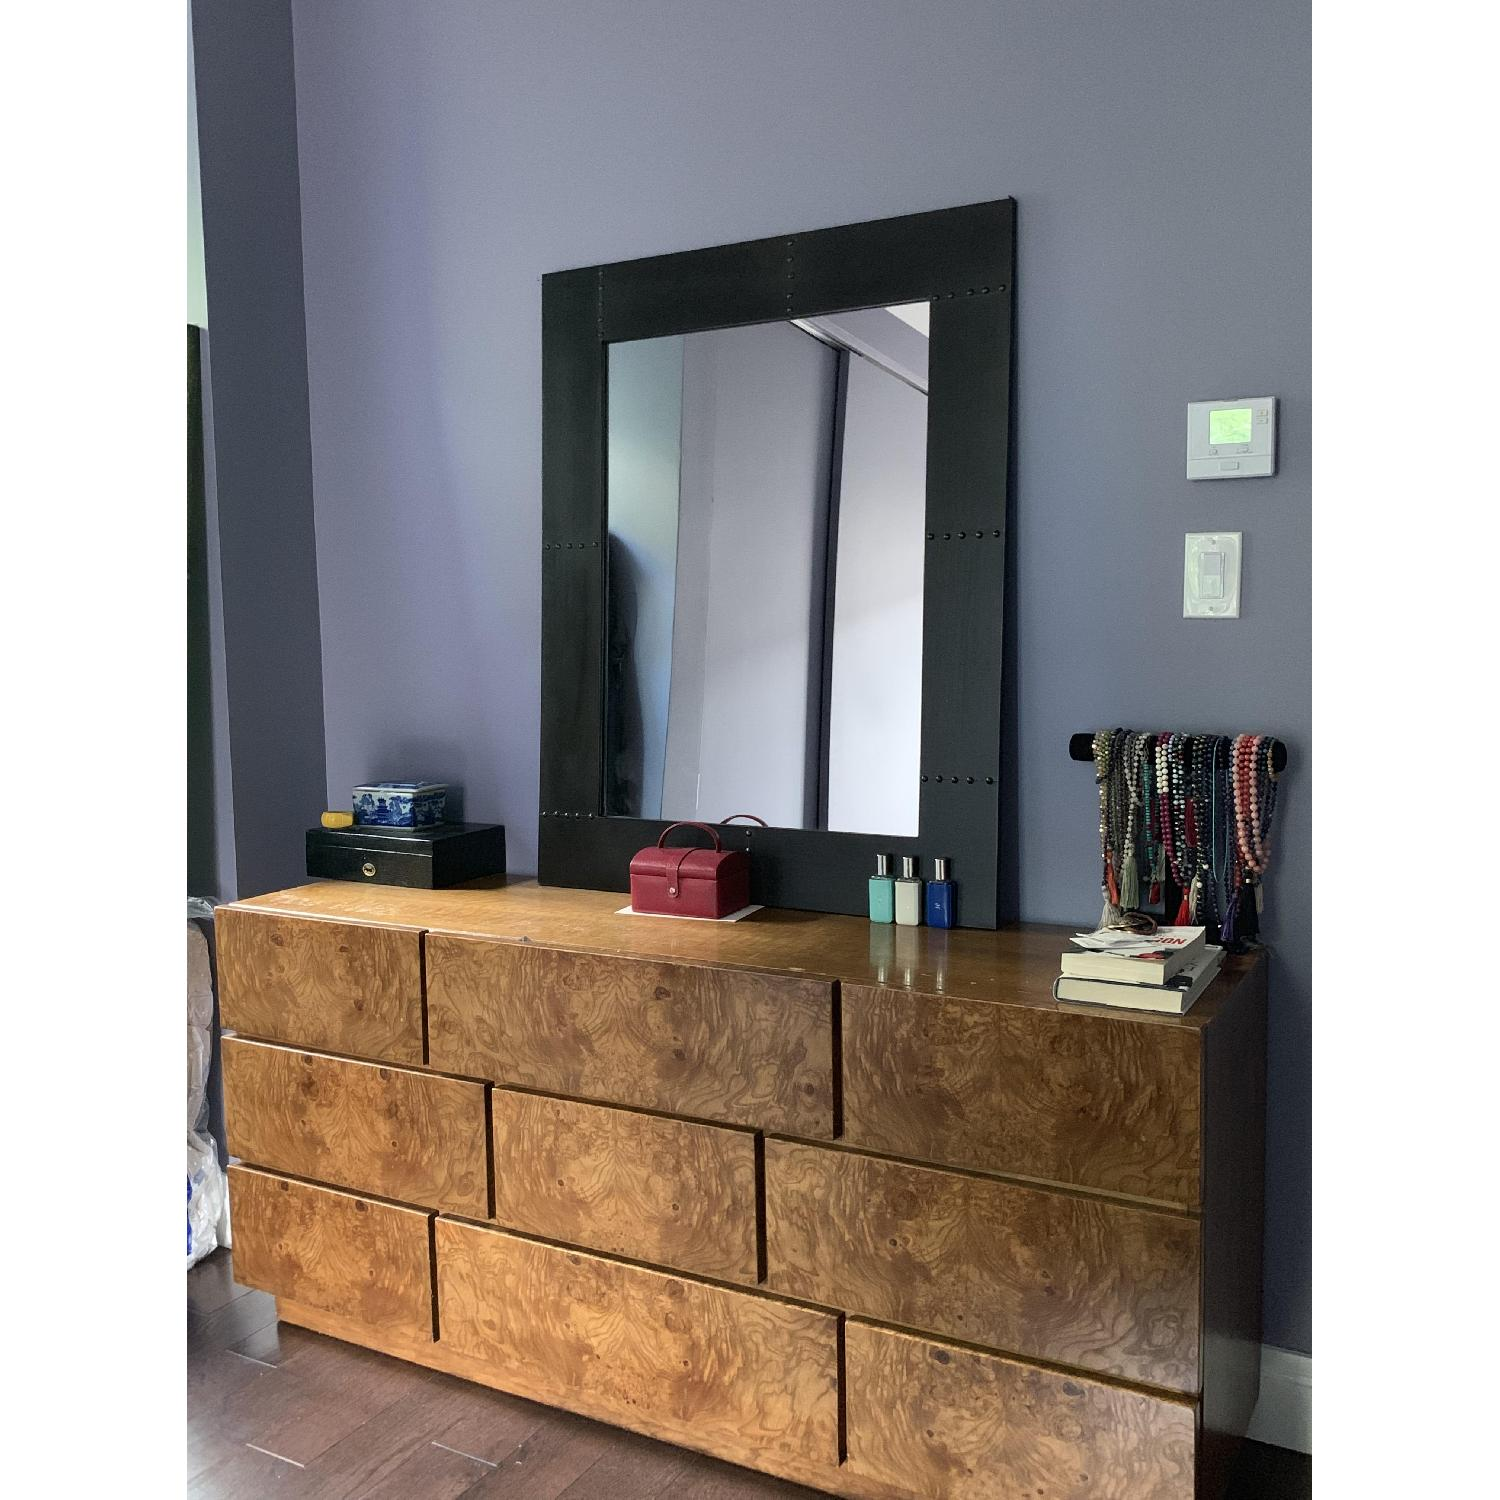 Crate & Barrel Wall Mirror - image-7